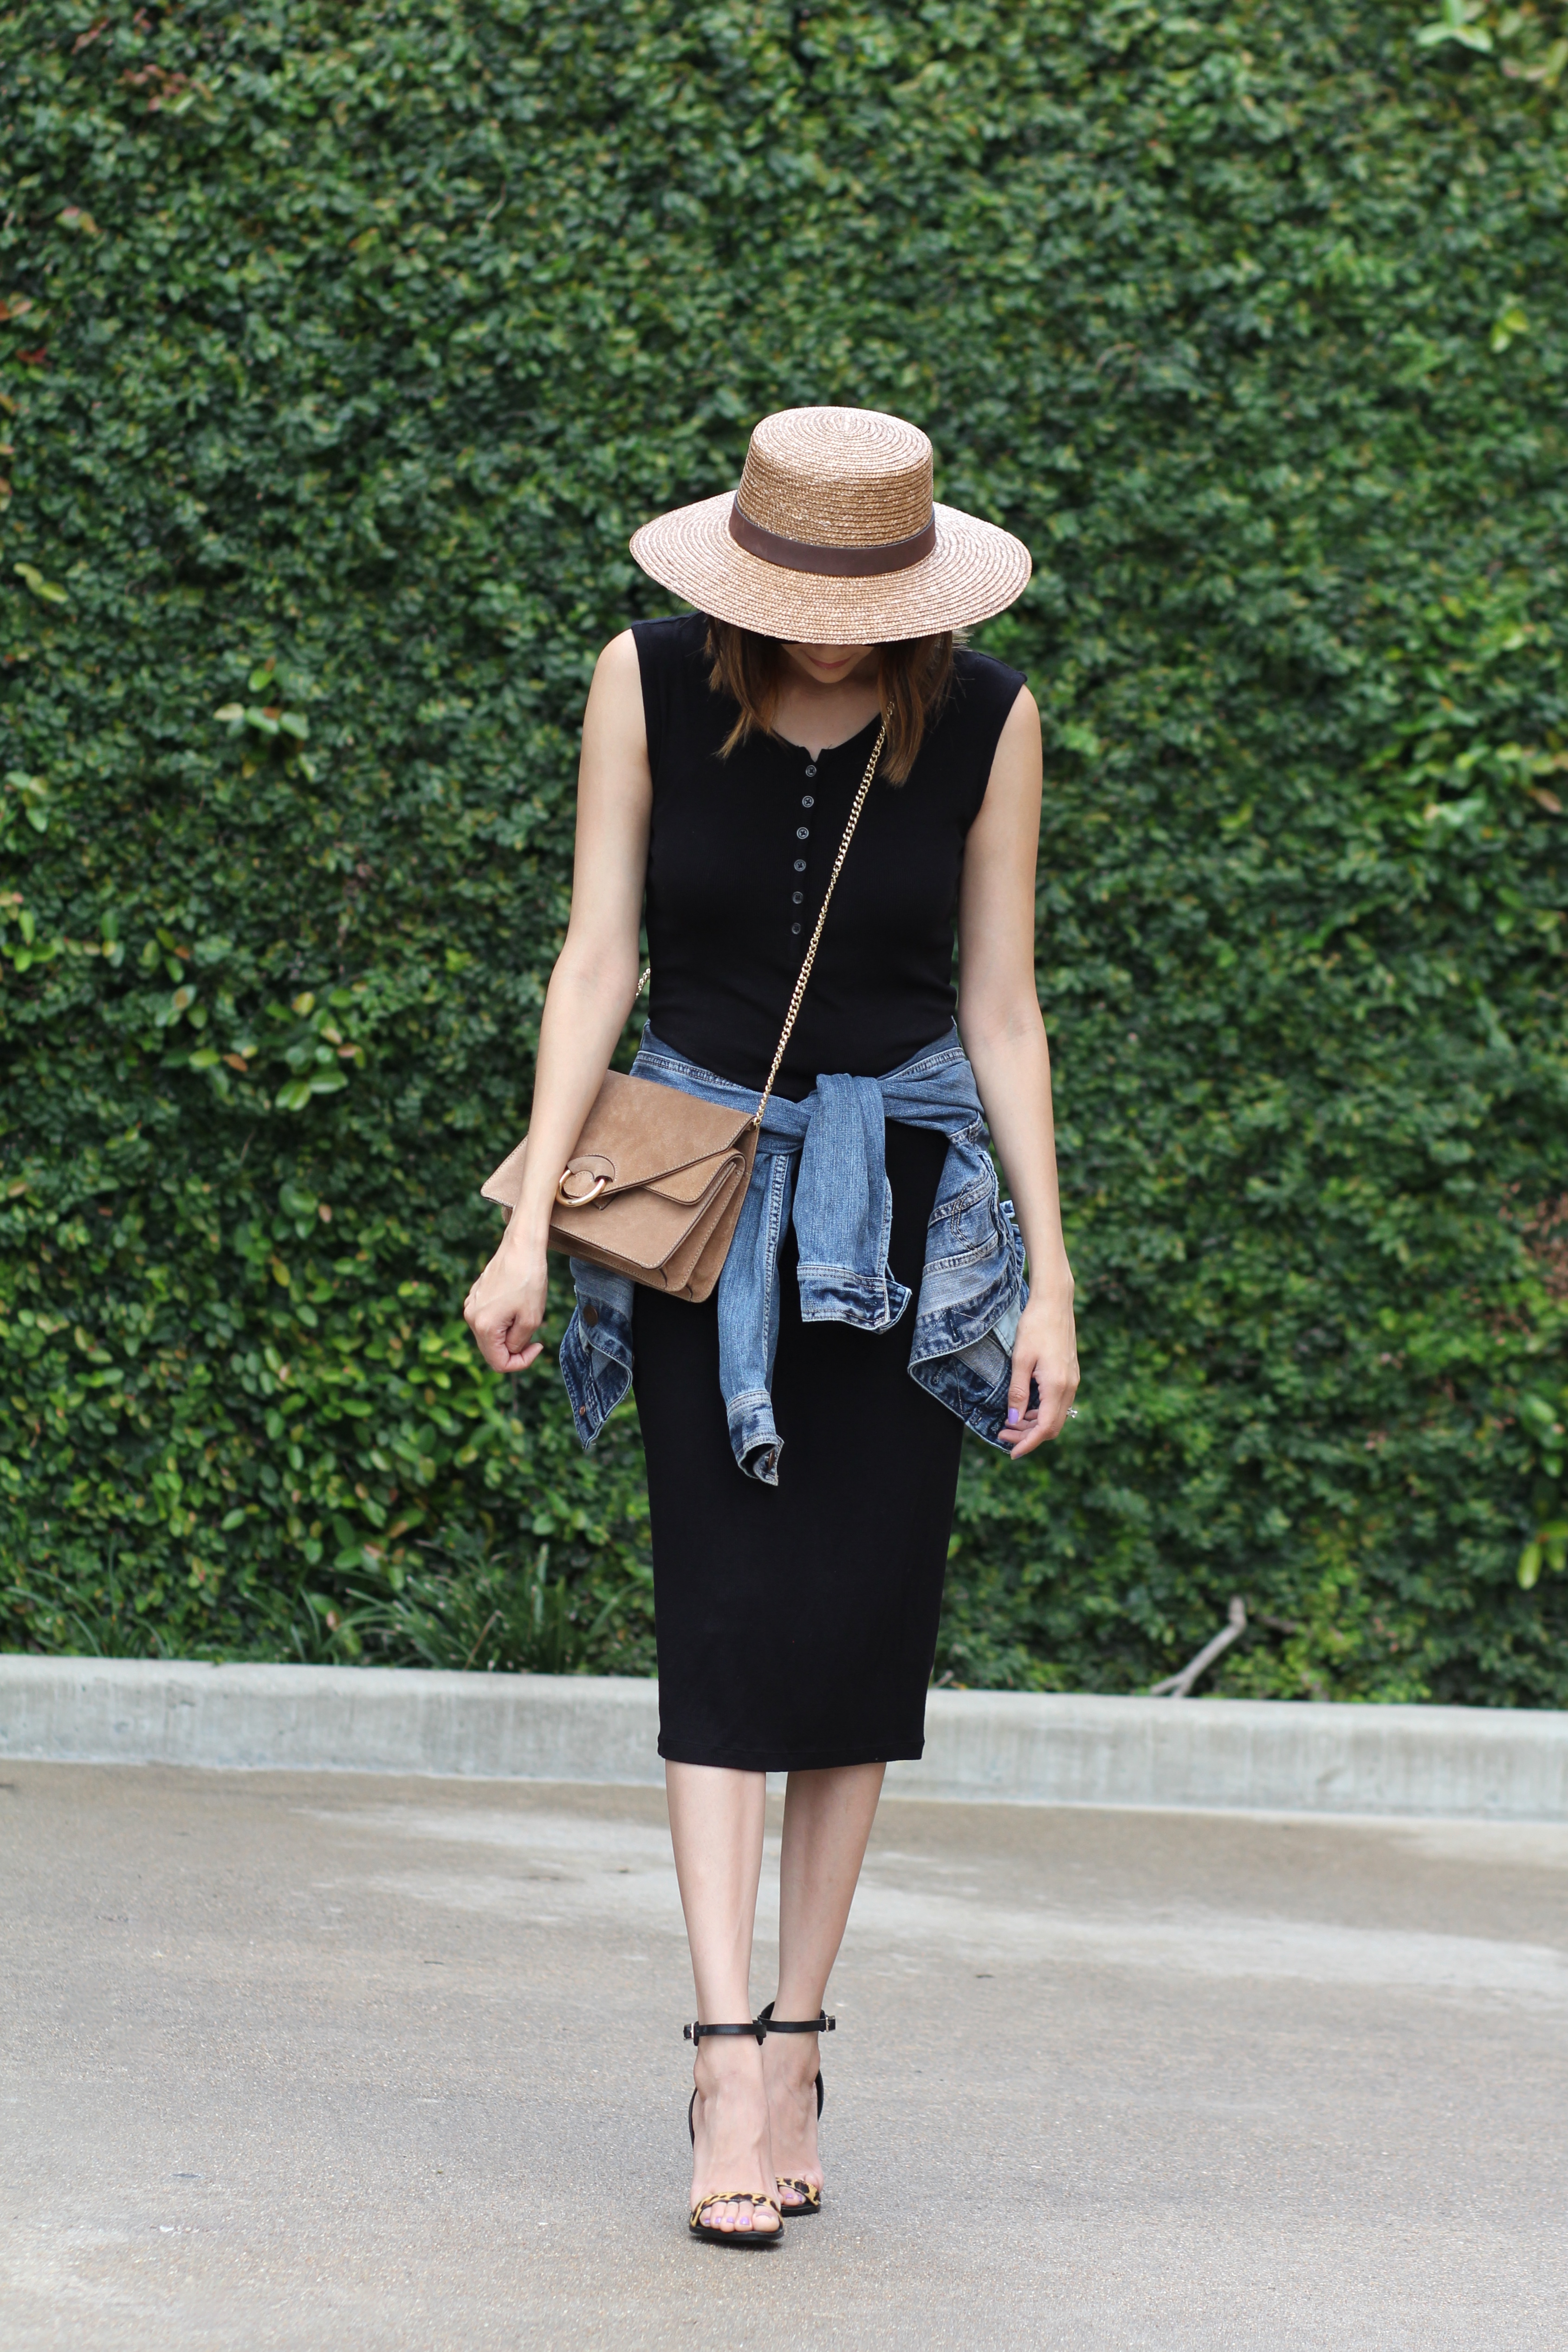 Summer Chic Casual Look   Daily Craving